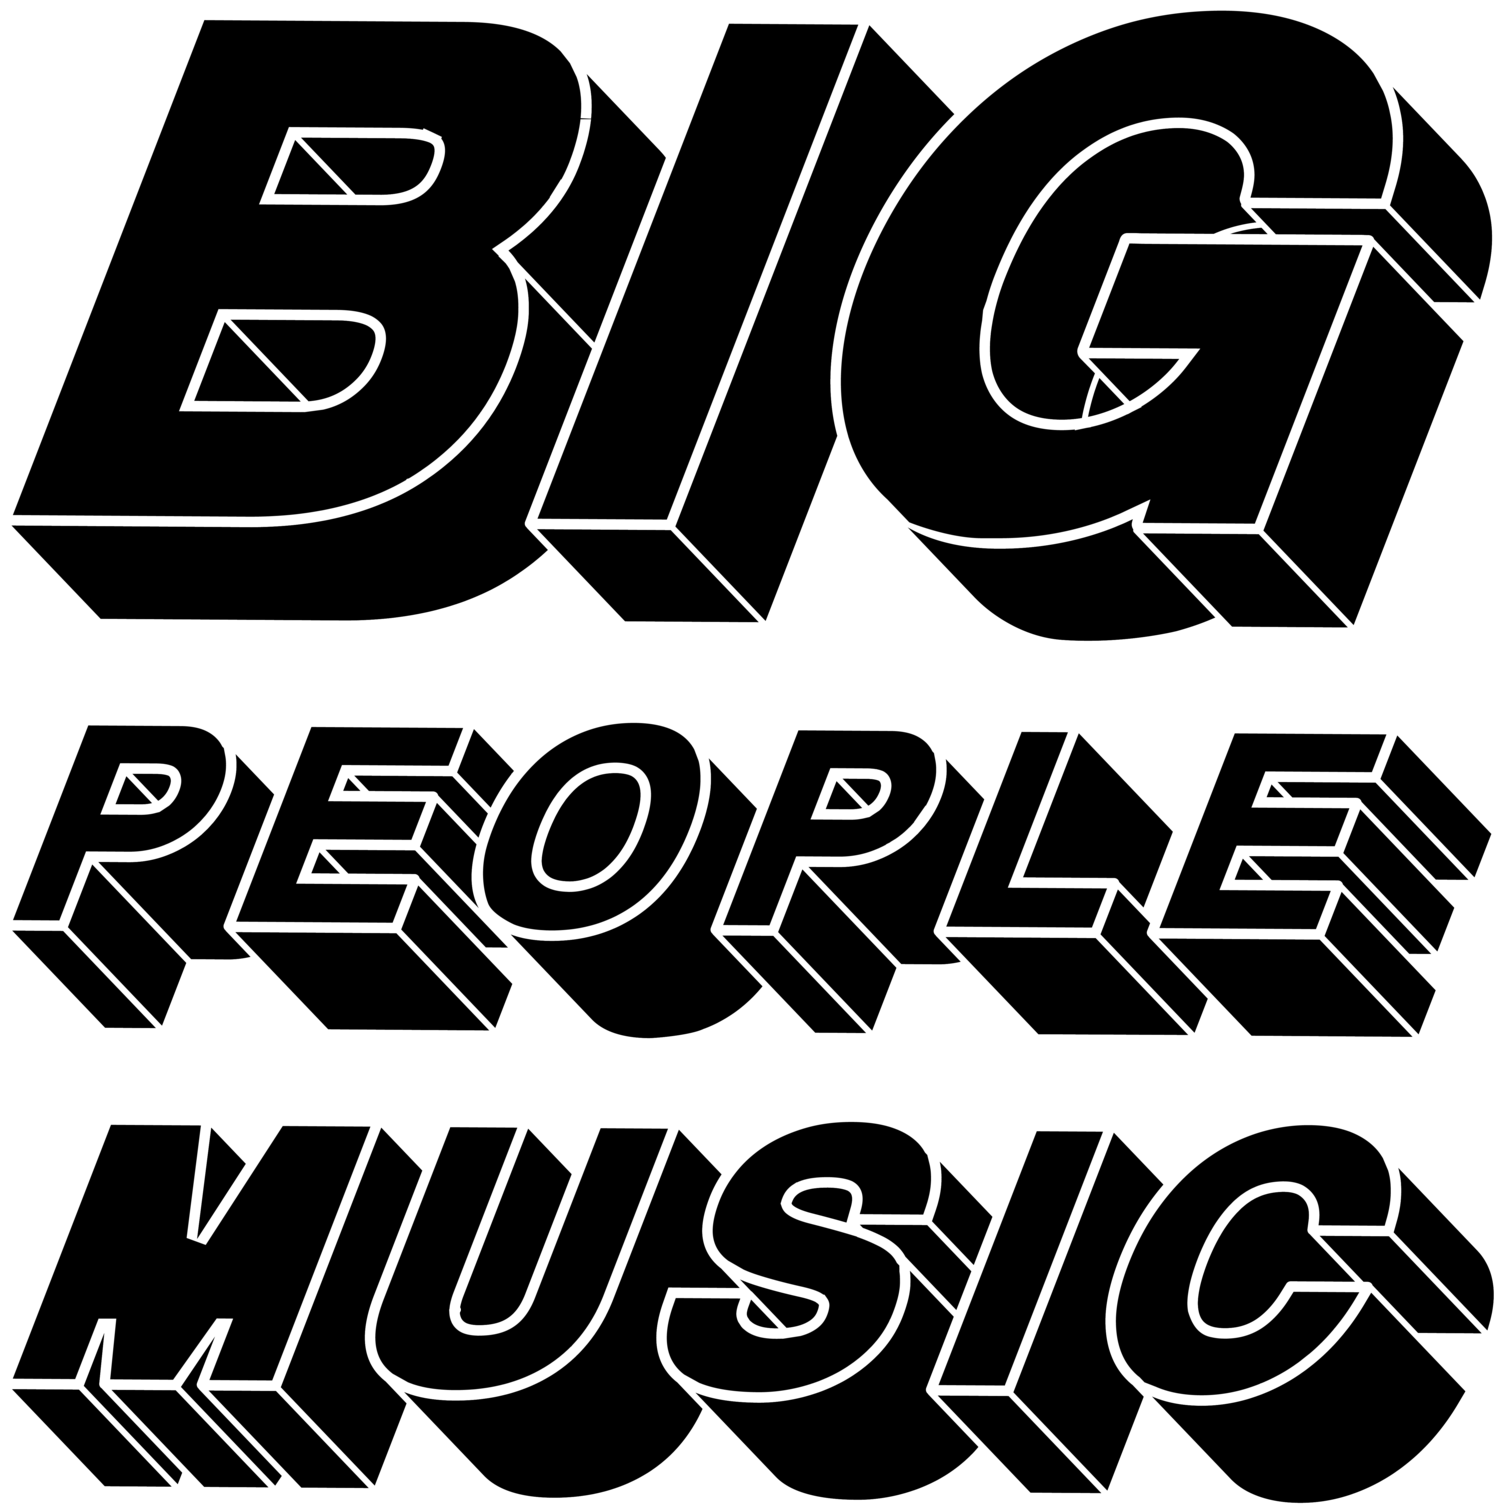 BIG PEOPLE MUSIC